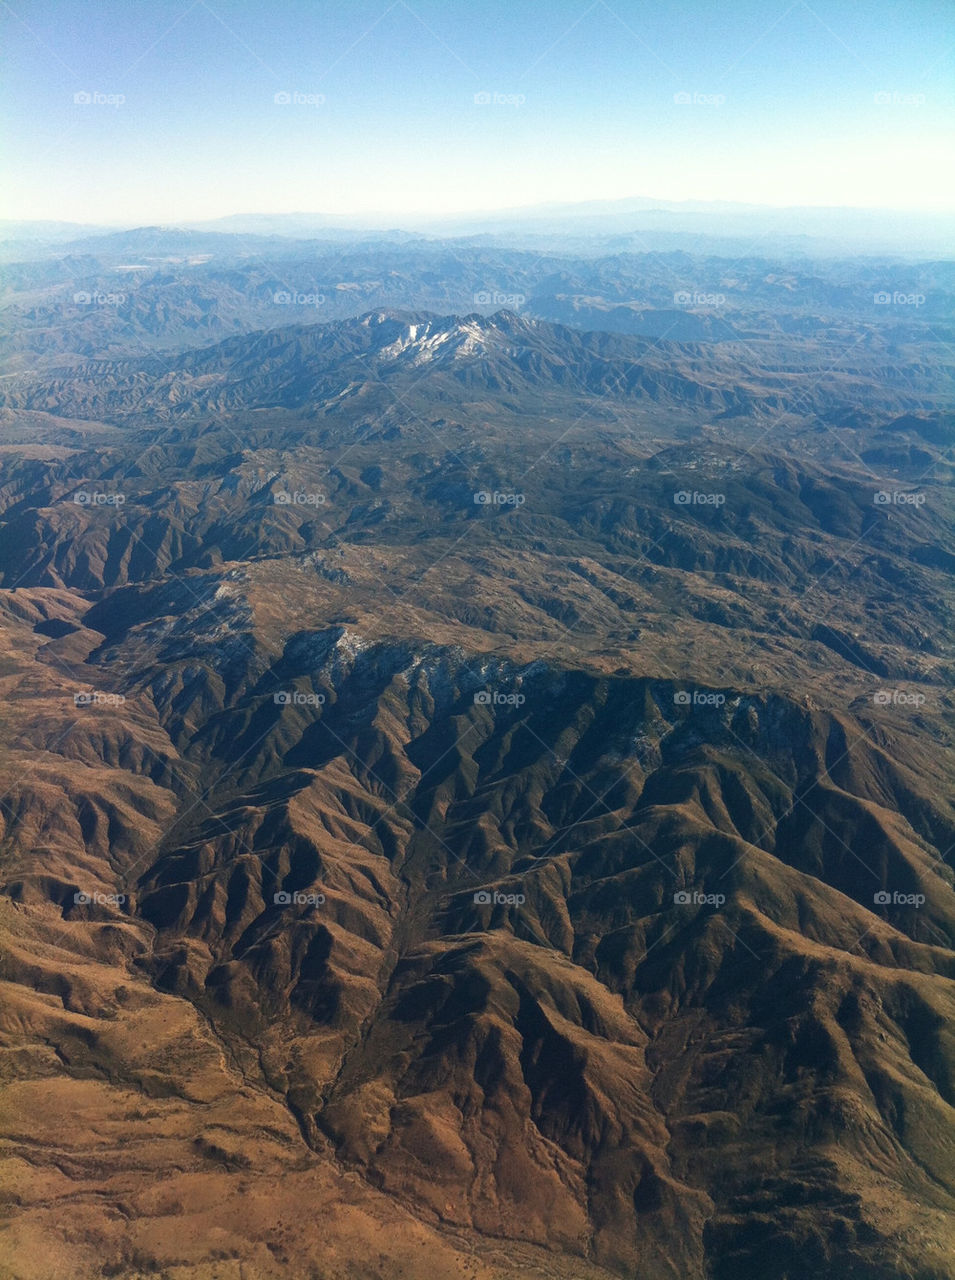 A snapshot over the mountains of the southwest.